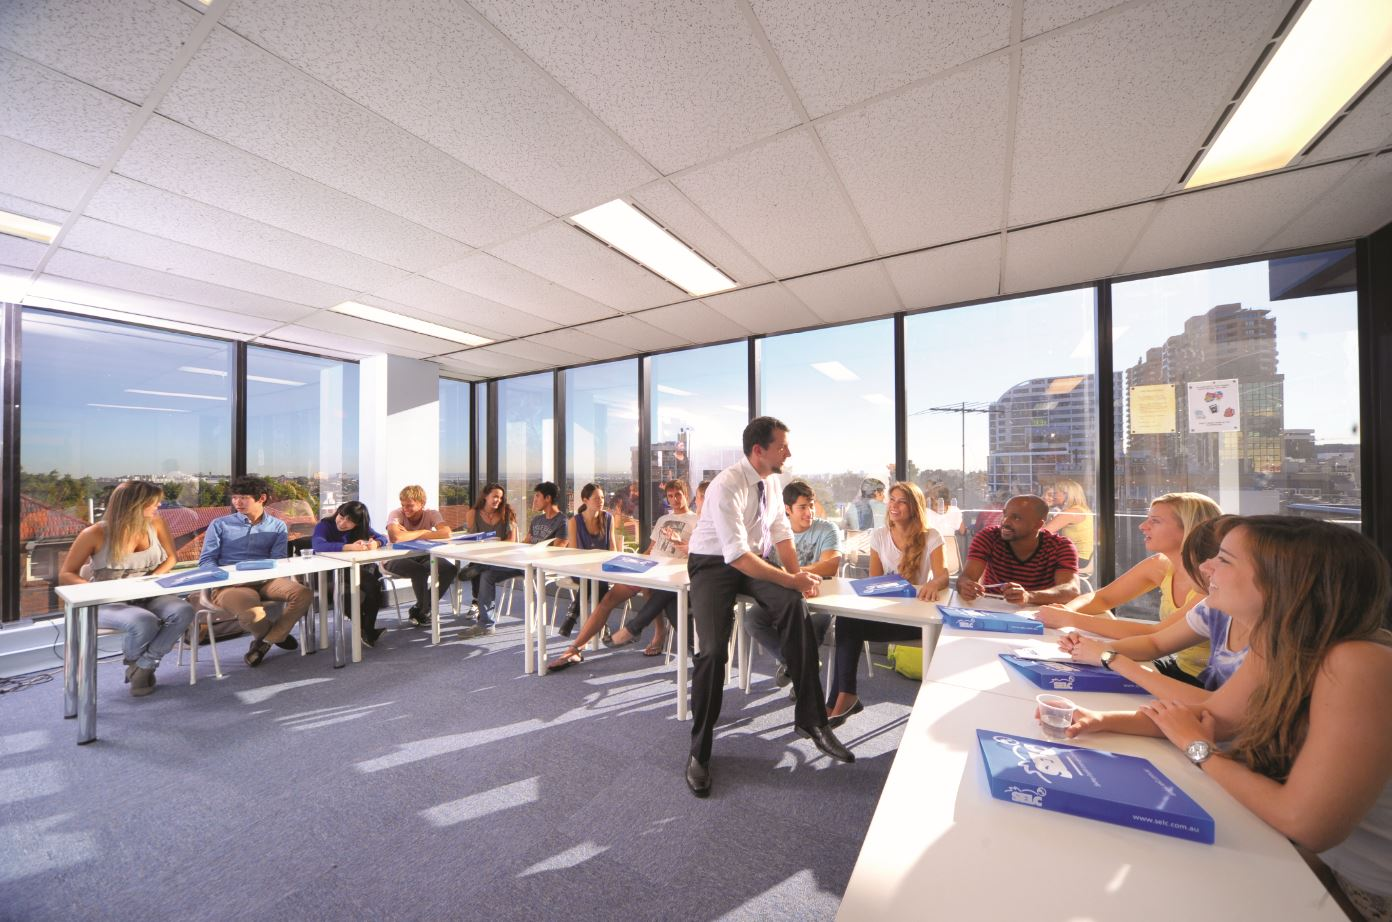 SELC – Sydney English Language Centre Bondi